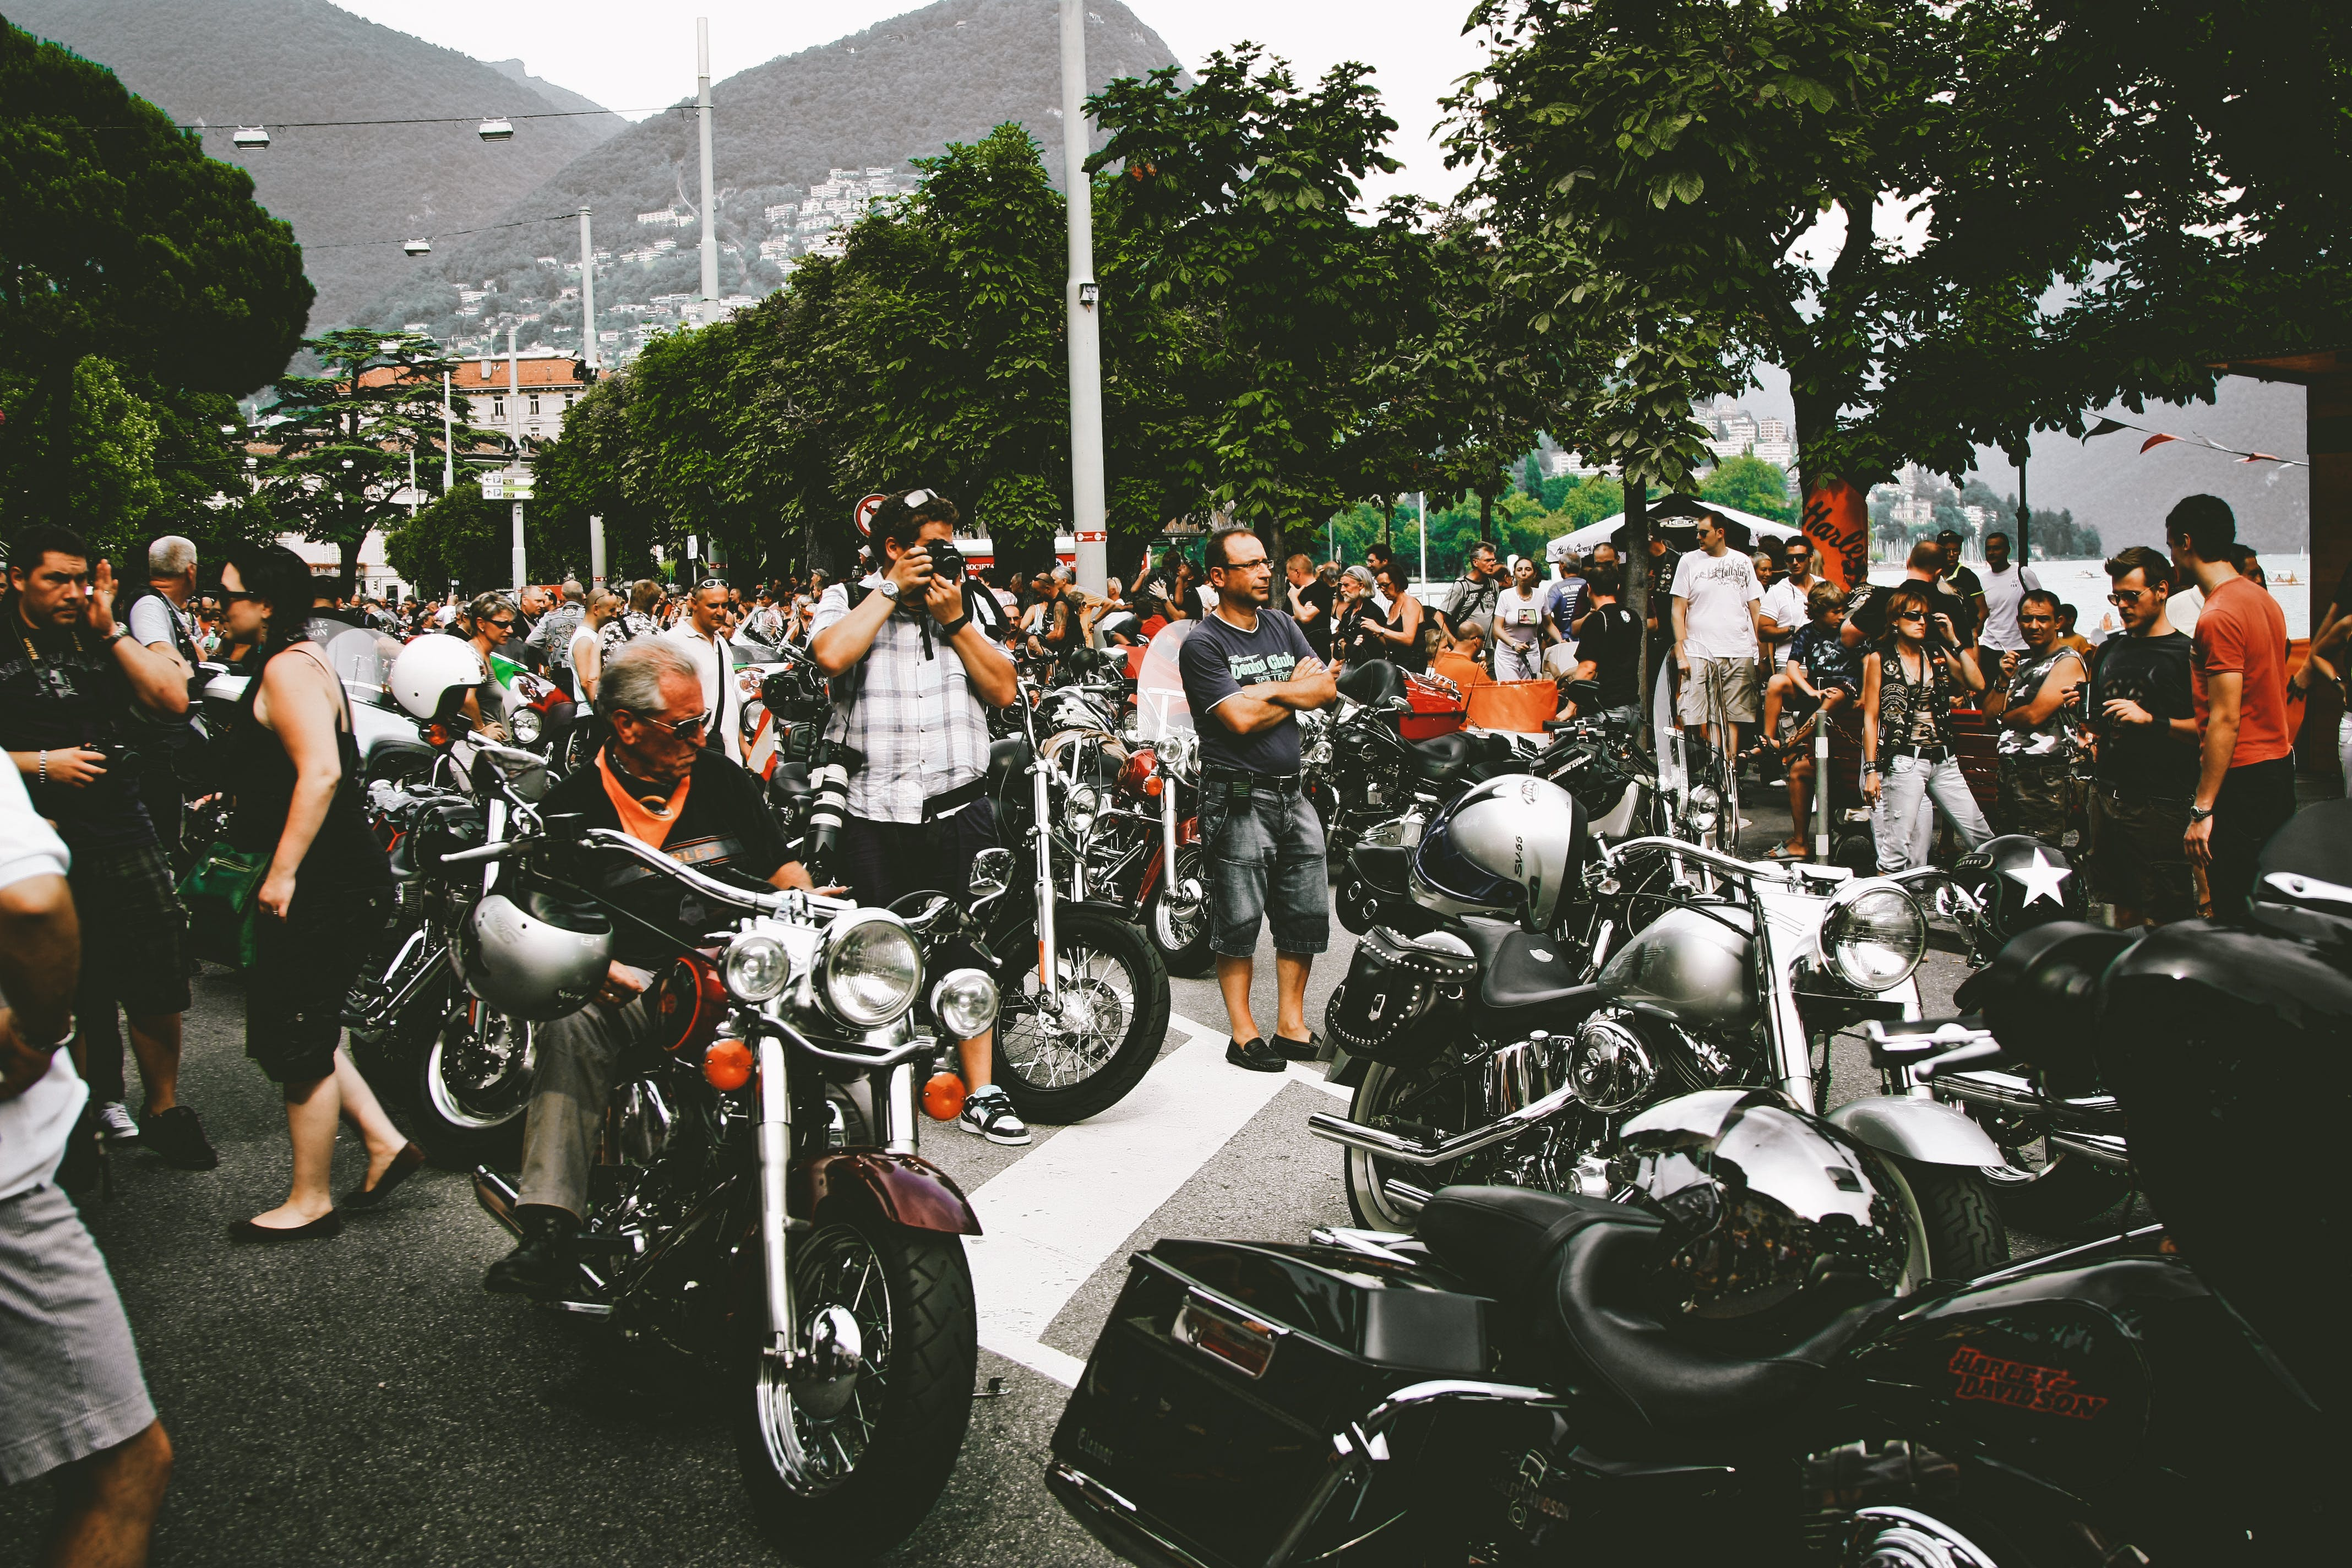 Photo of People in Motorcycle Show